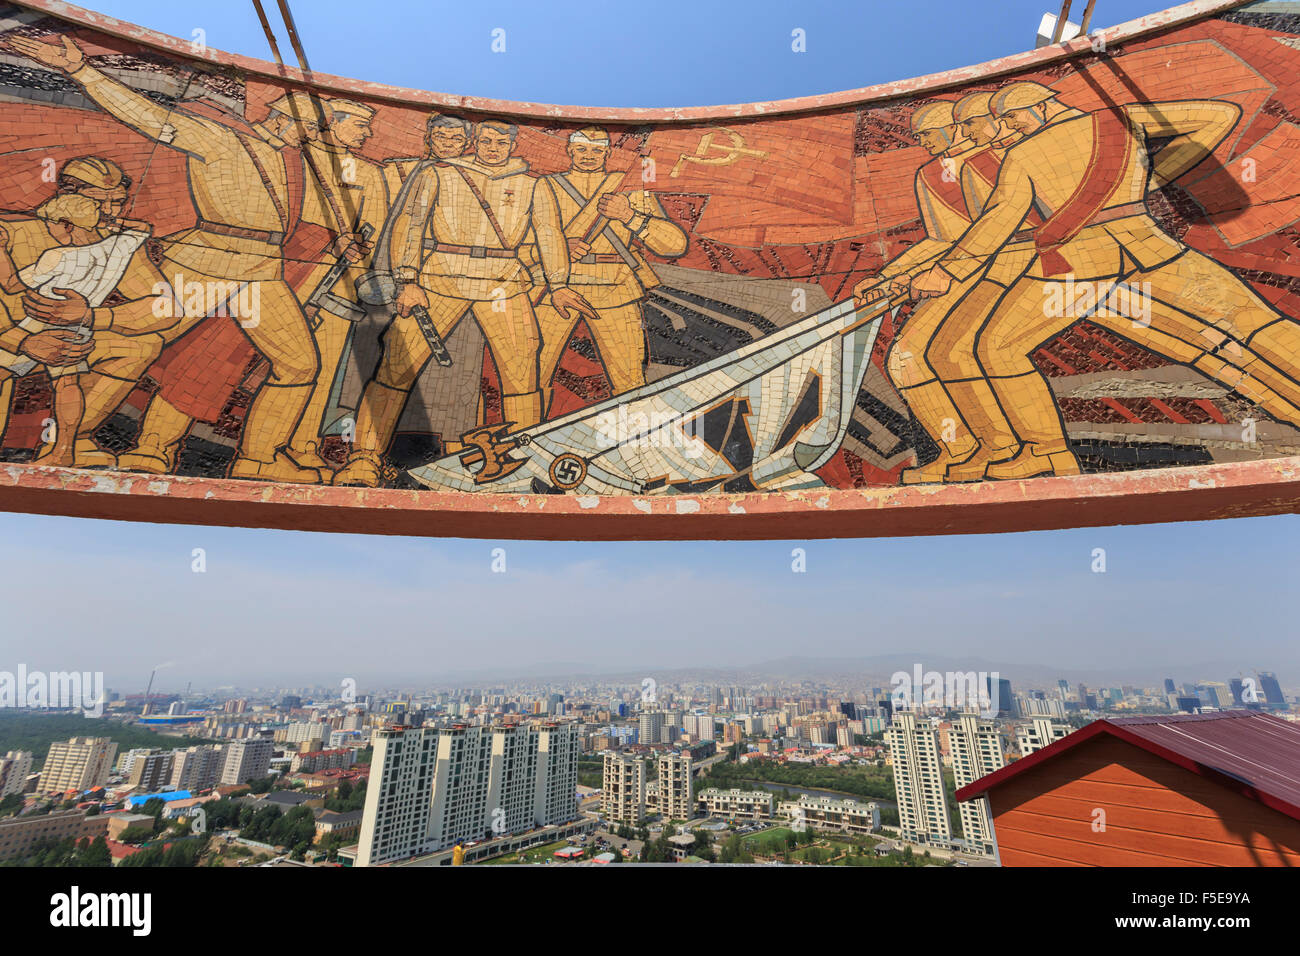 Elevated view of city, from Soviet era Memorial to Unknown Soldiers and Heroes, Zaisan Hill, Ulaanbaatar (Ulan Bator), - Stock Image